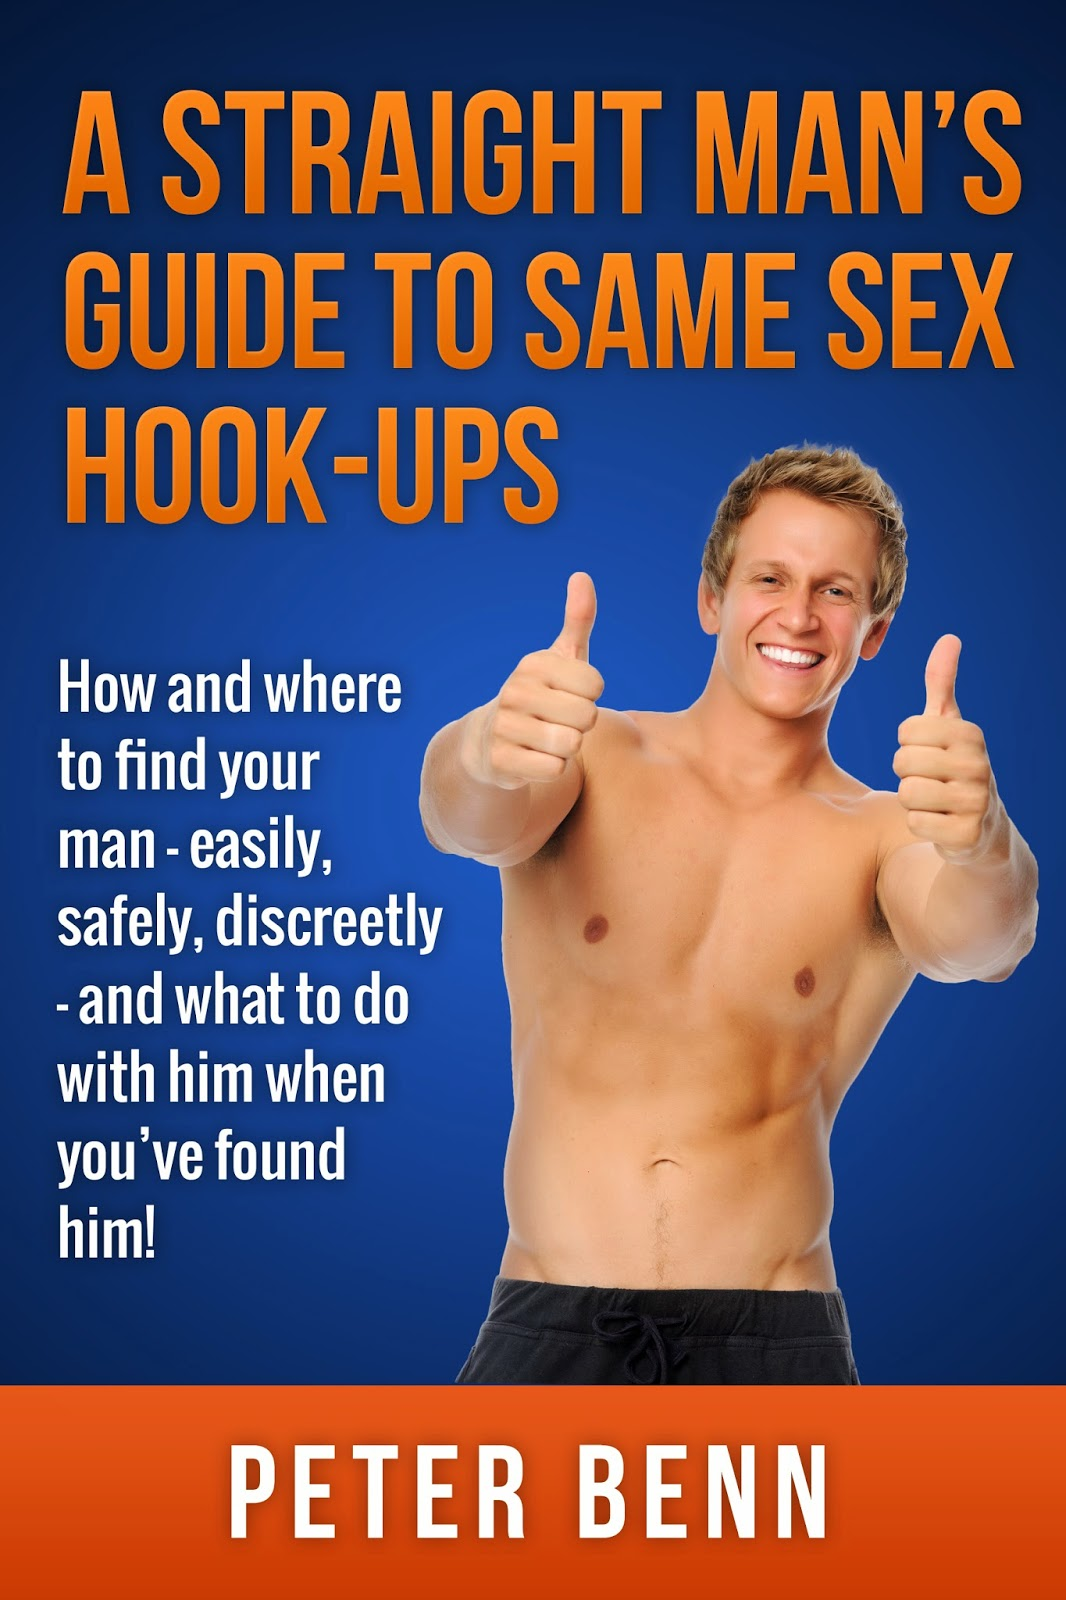 local sex hook ups west